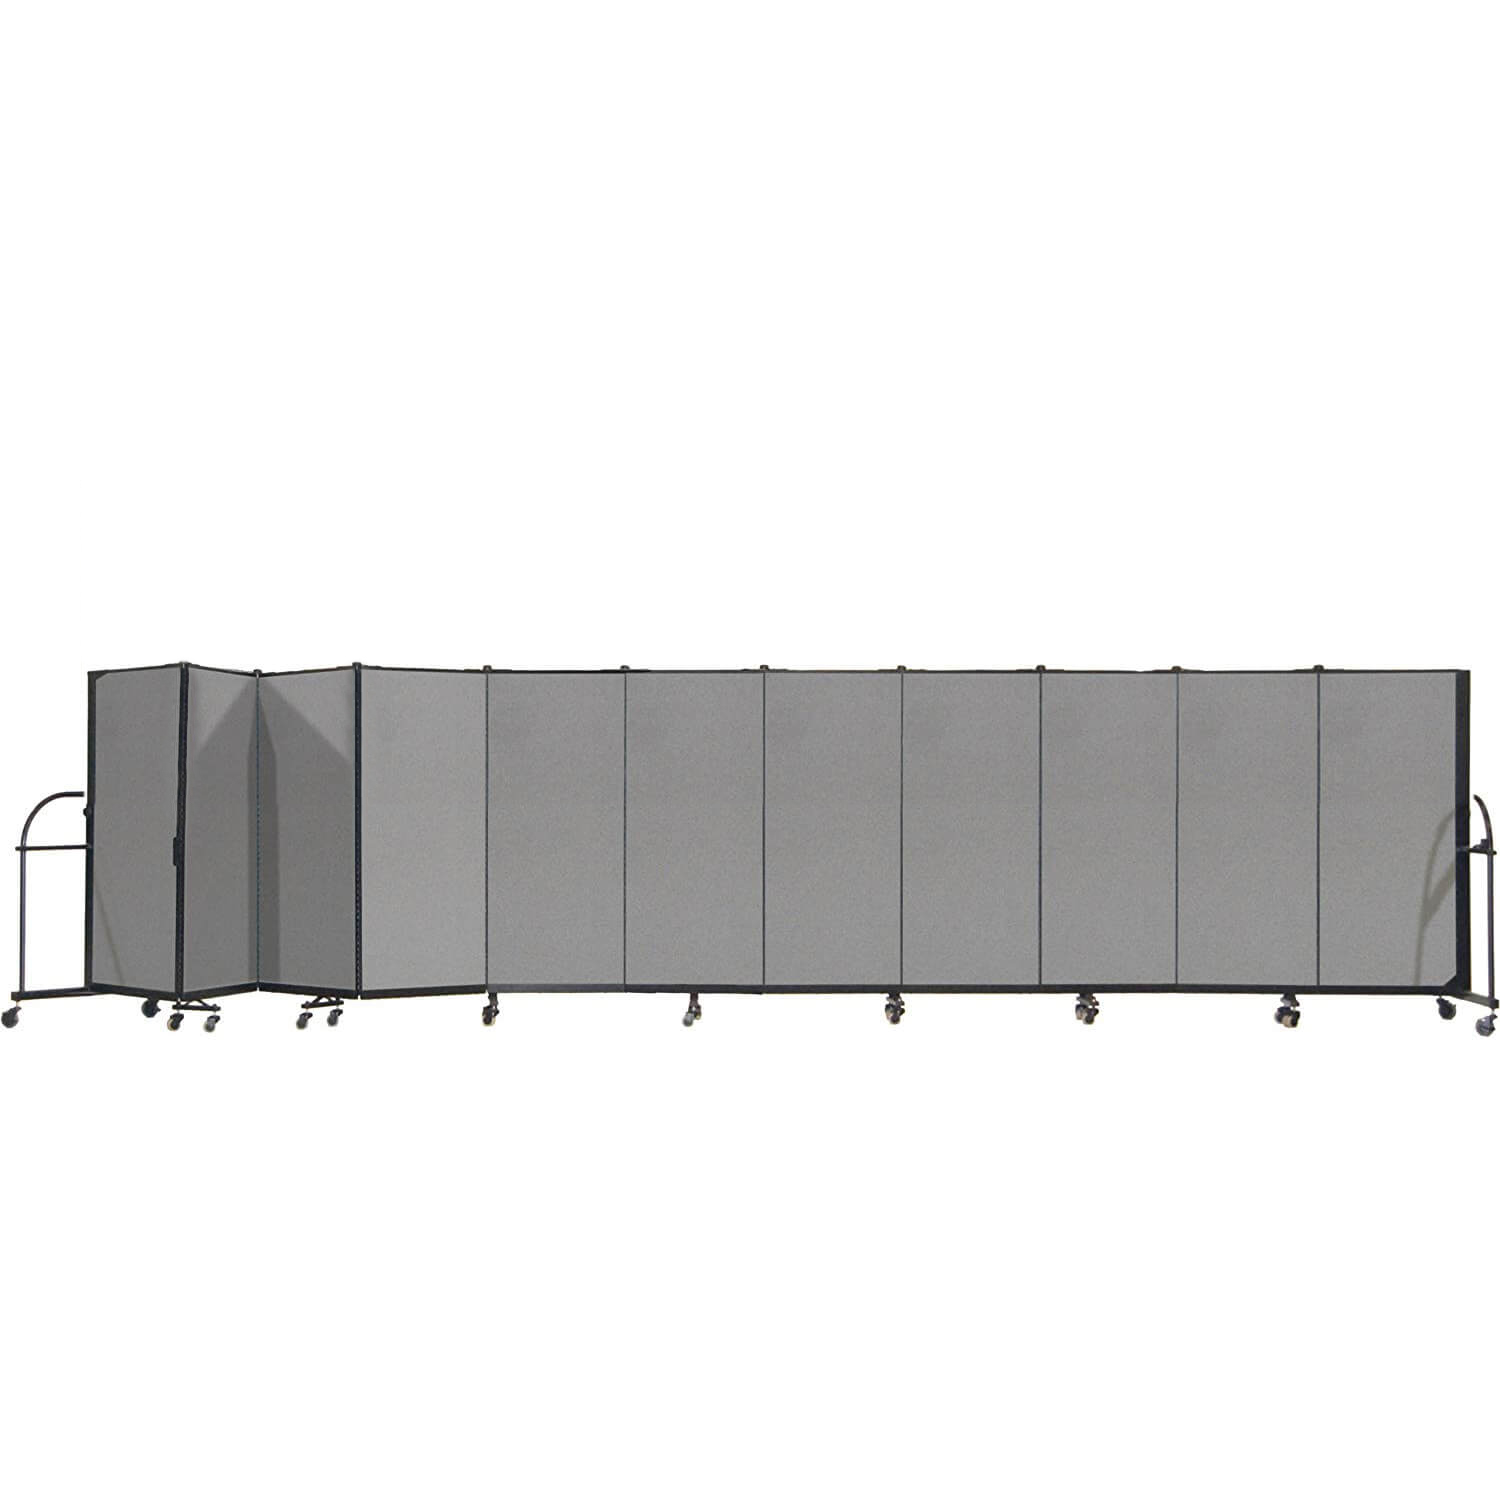 Panel room dividers CUB QSCFSL4011DG RCS 1 2